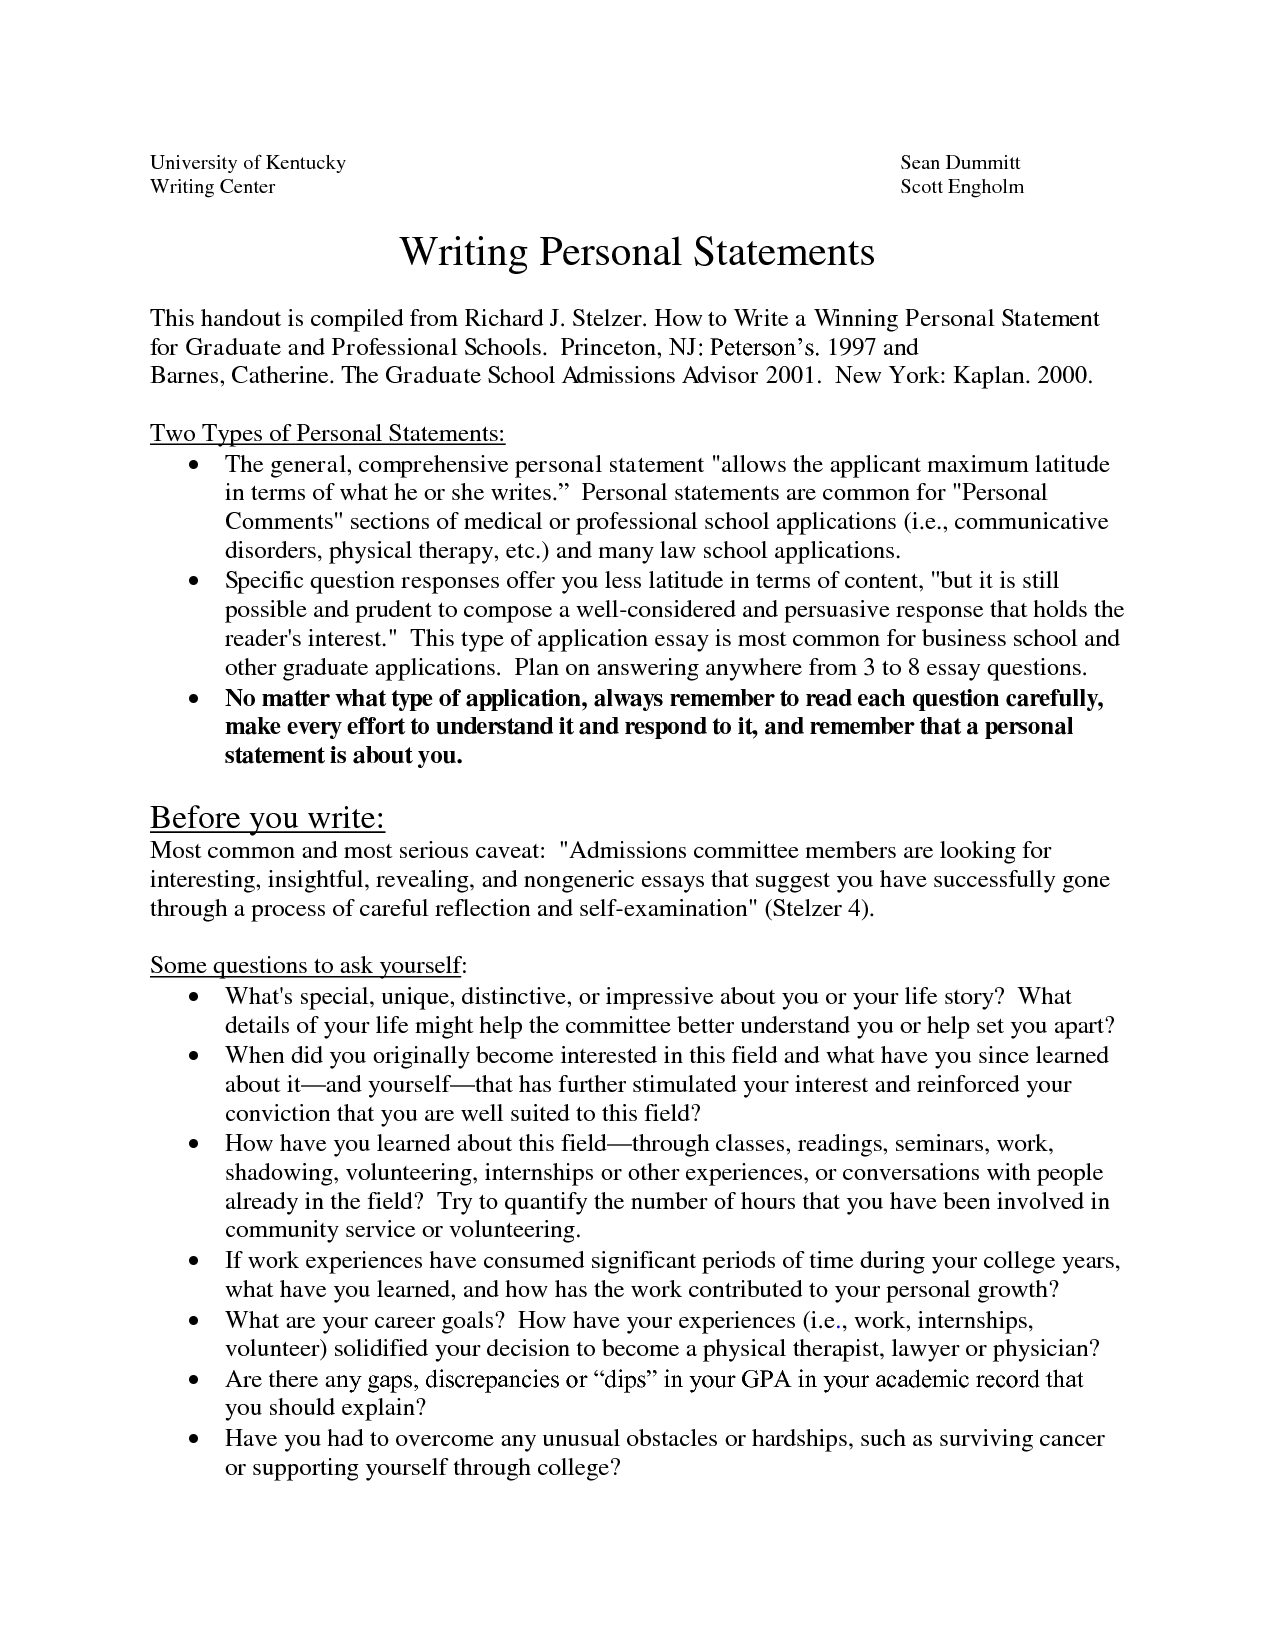 Stanford Application Essay Sample Personal Statements Graduate School  How To Write A Personal  Statement For Medical School Helen Keller Essay also Personal Narrative Essays Sample Personal Statements Graduate School  How To Write A Personal  Euthanasia Argumentative Essay